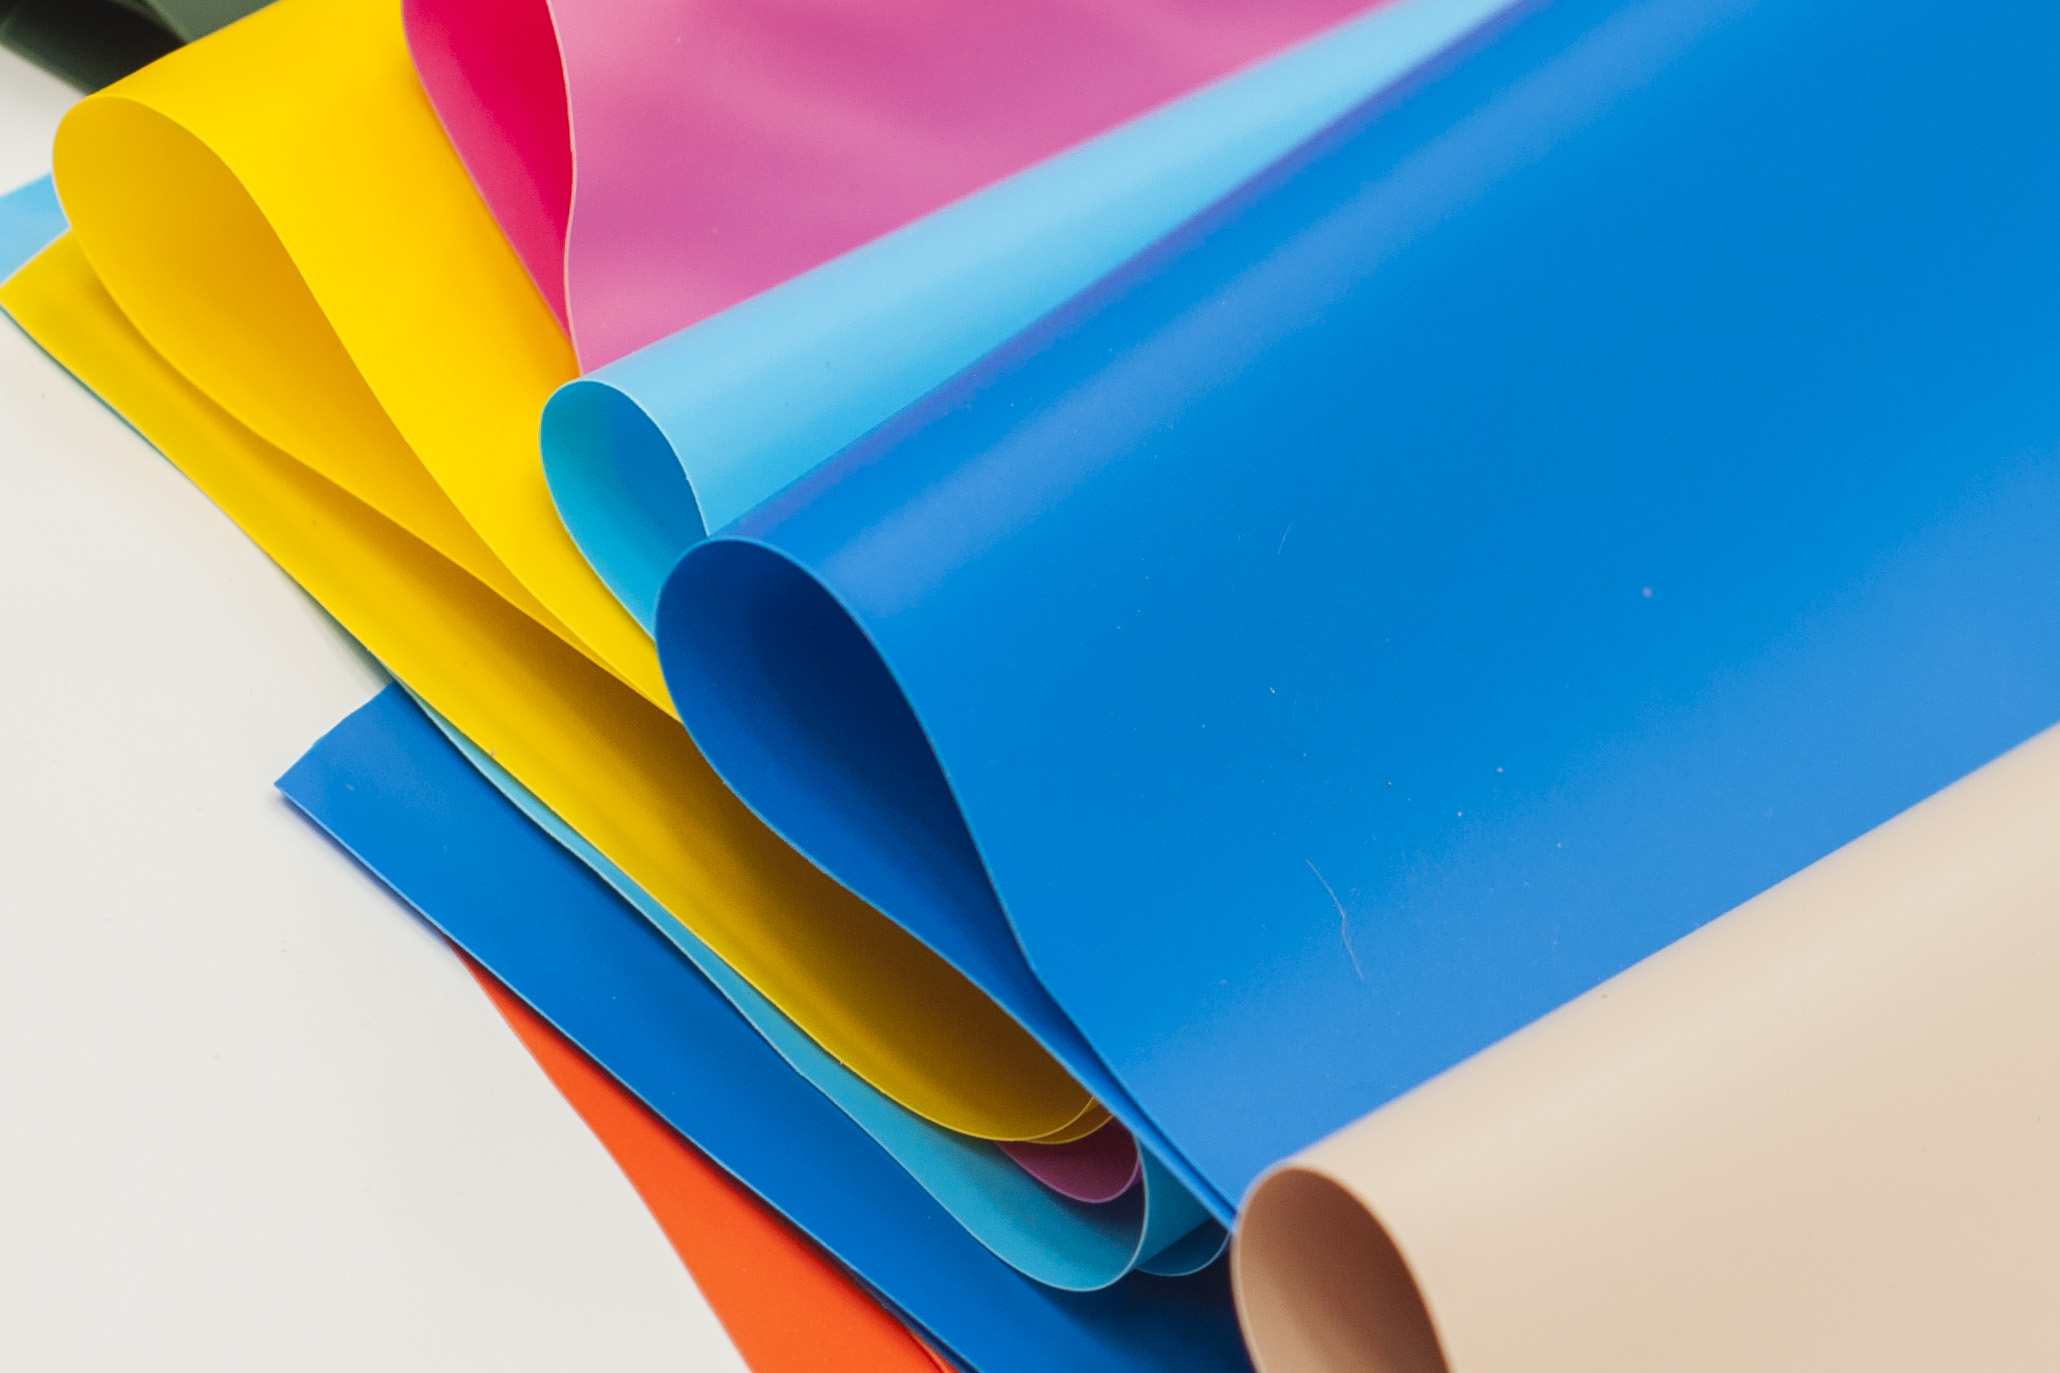 PVC Film - We manufacture PVC film for a variety of applications and specialize in offering high quality PVC film set to professional industry standards.